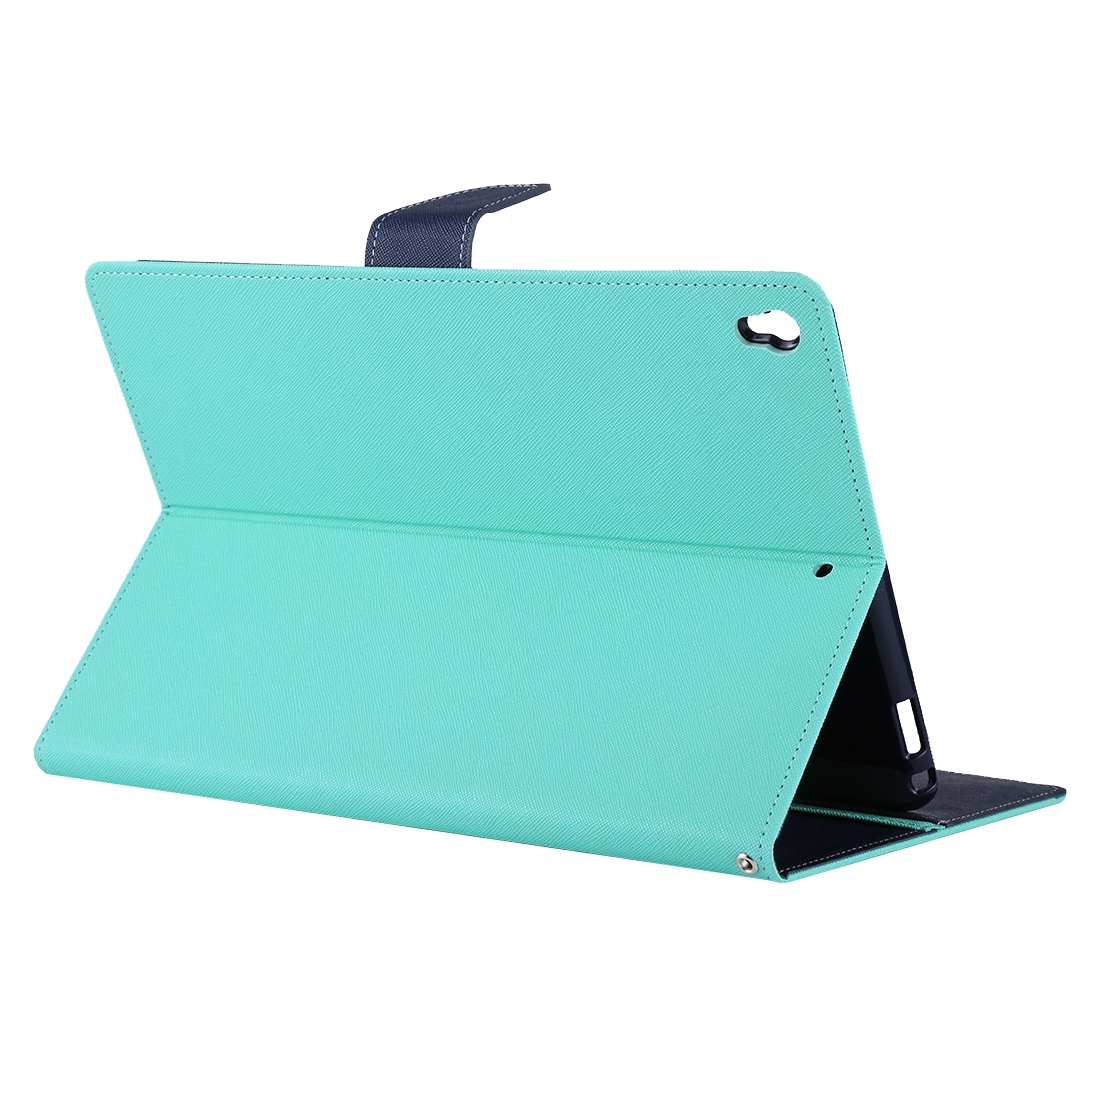 iPad Air 3 Case (10.5 Inch) Anti-slip Leather Protector Case (Mint Green)